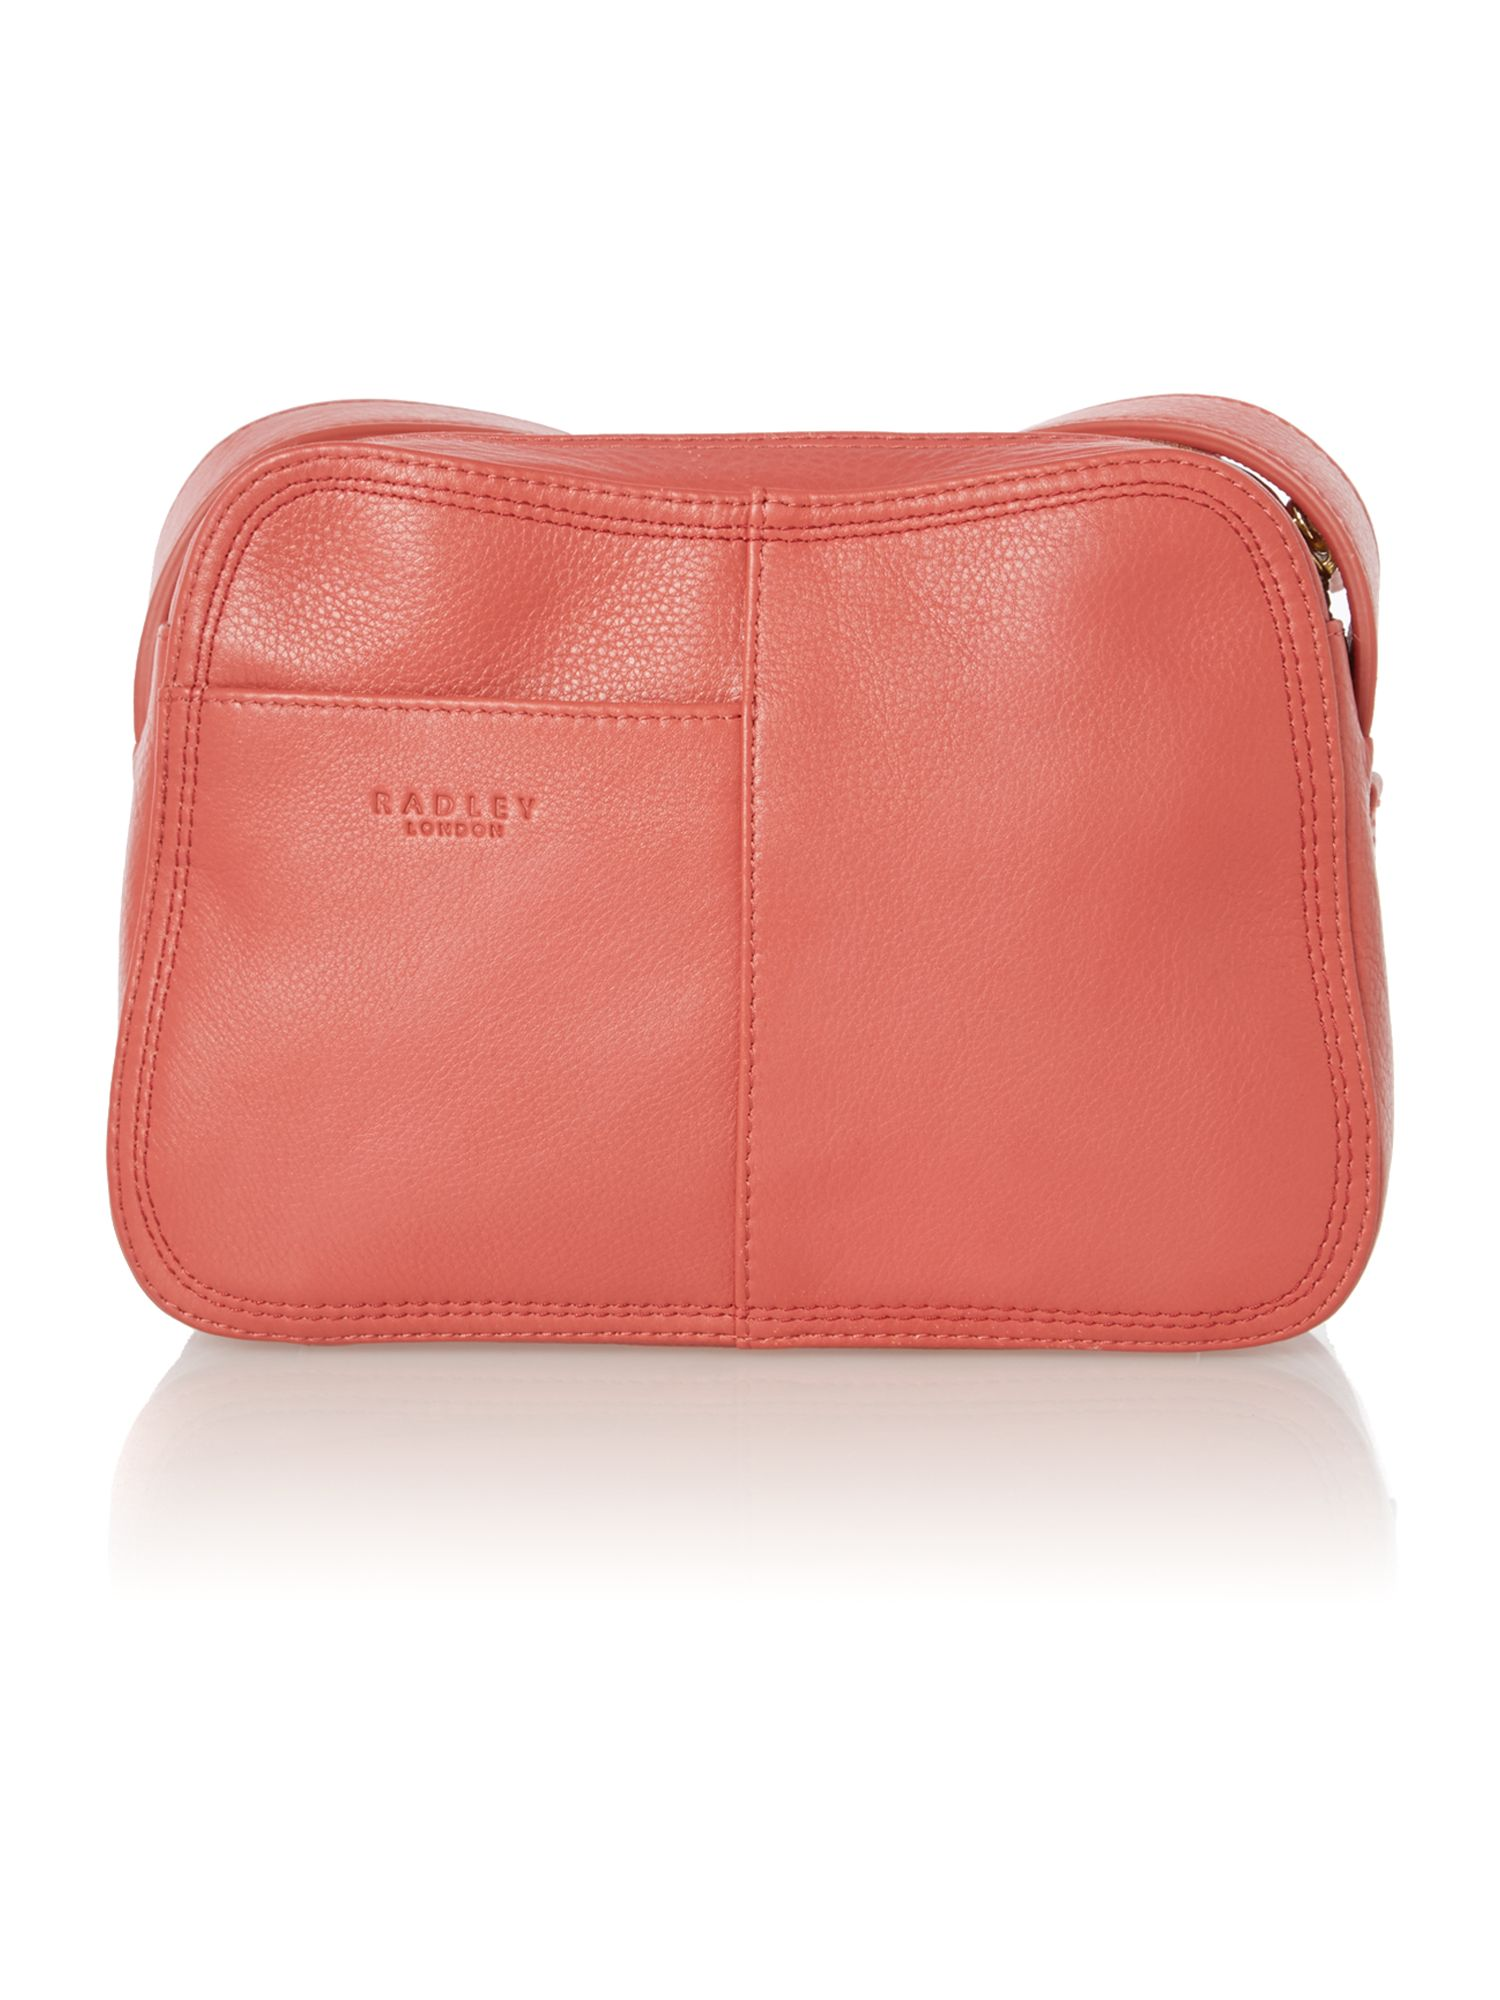 Westbury pink small leather cross body bag